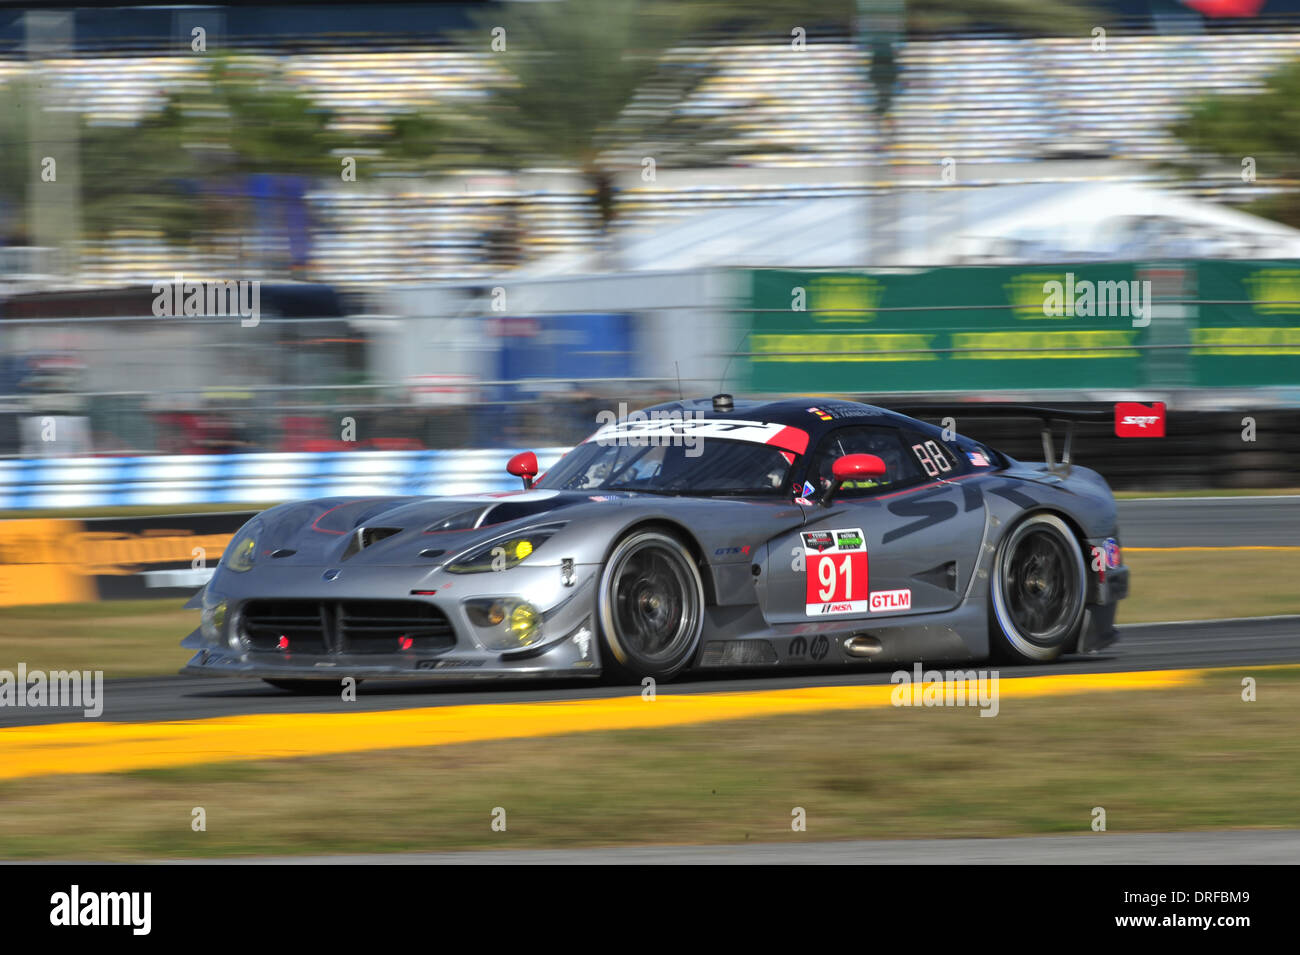 American Le Mans Stock Photos Amp American Le Mans Stock Images Alamy